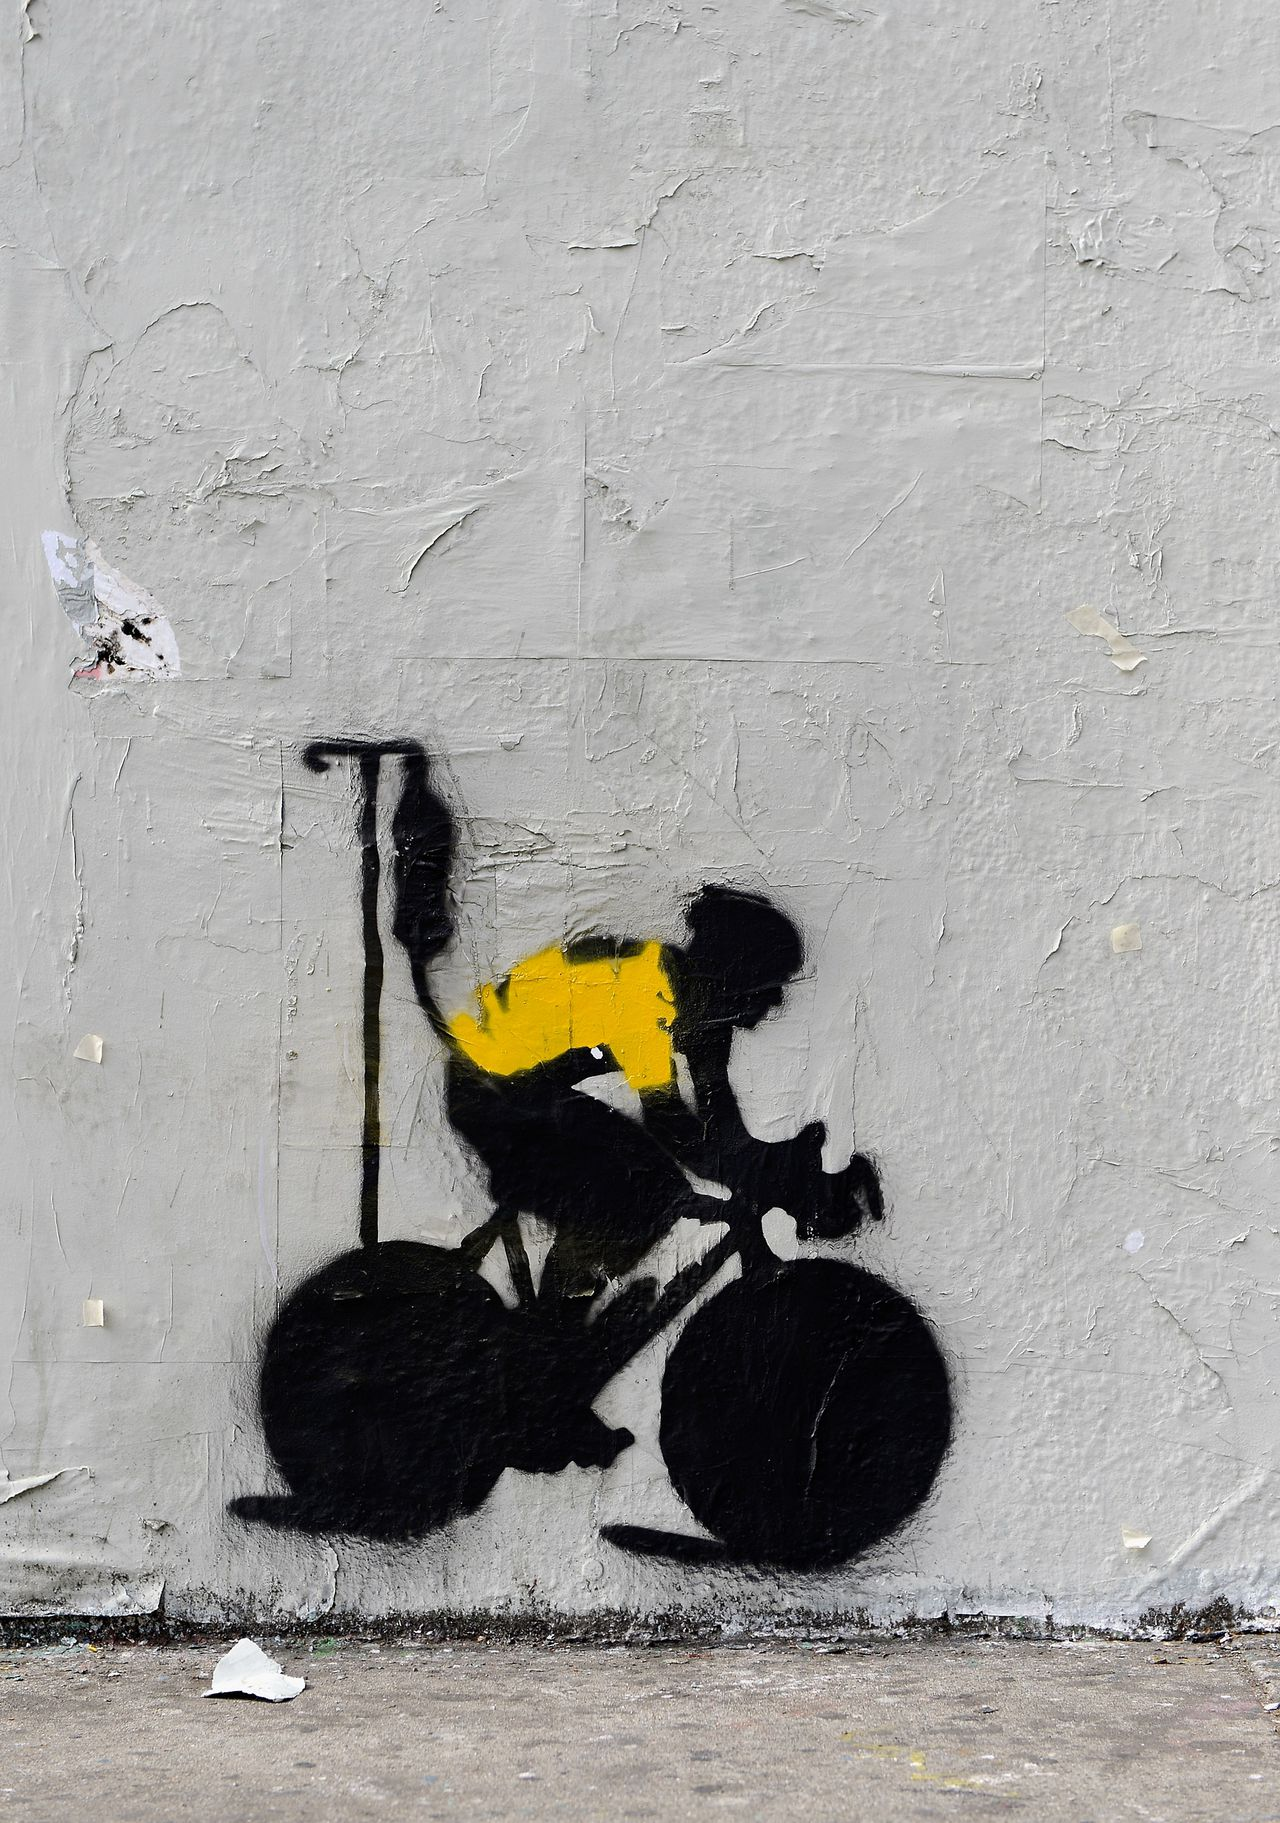 LOS ANGELES, CA - JANUARY 23: A stencil graffiti depicting cyclist Lance Armstrong in a yellow jersey, the traditional garb of the seven-time Tour De France winner, attached to an IV drip is pictured on the side of a building on January 23, 2013 in Los Angeles, California. Armstrong recently admitted to using performance enhancing drugs after being found guilty by the United States Anti-Doping Agency and stripped of his titles. Kevork Djansezian/Getty Images/AFP == FOR NEWSPAPERS, INTERNET, TELCOS & TELEVISION USE ONLY ==